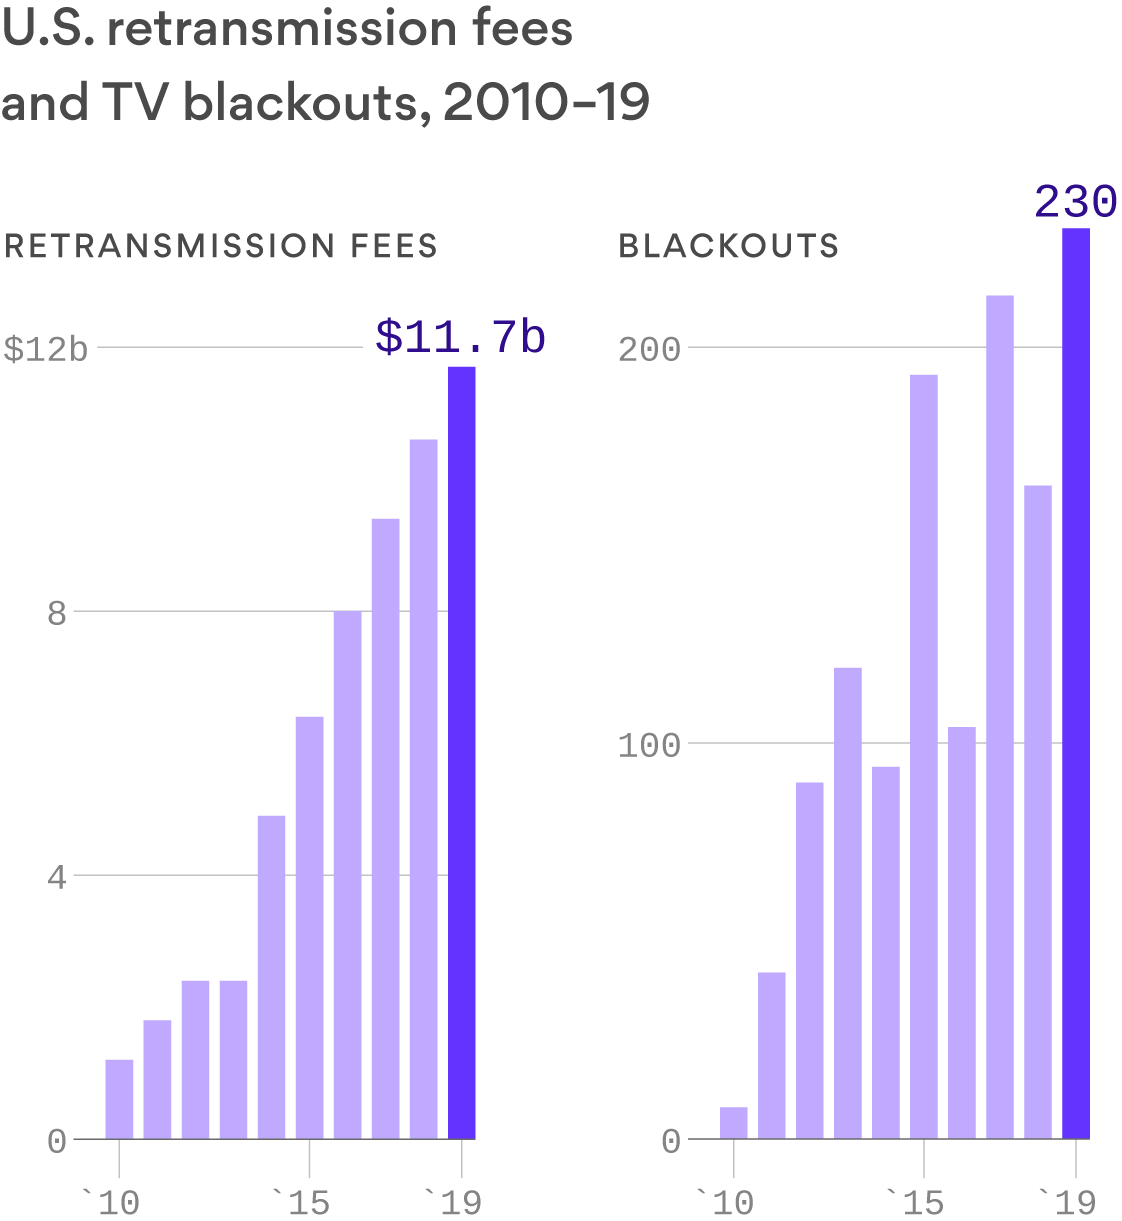 2019 sees record number of TV blackouts